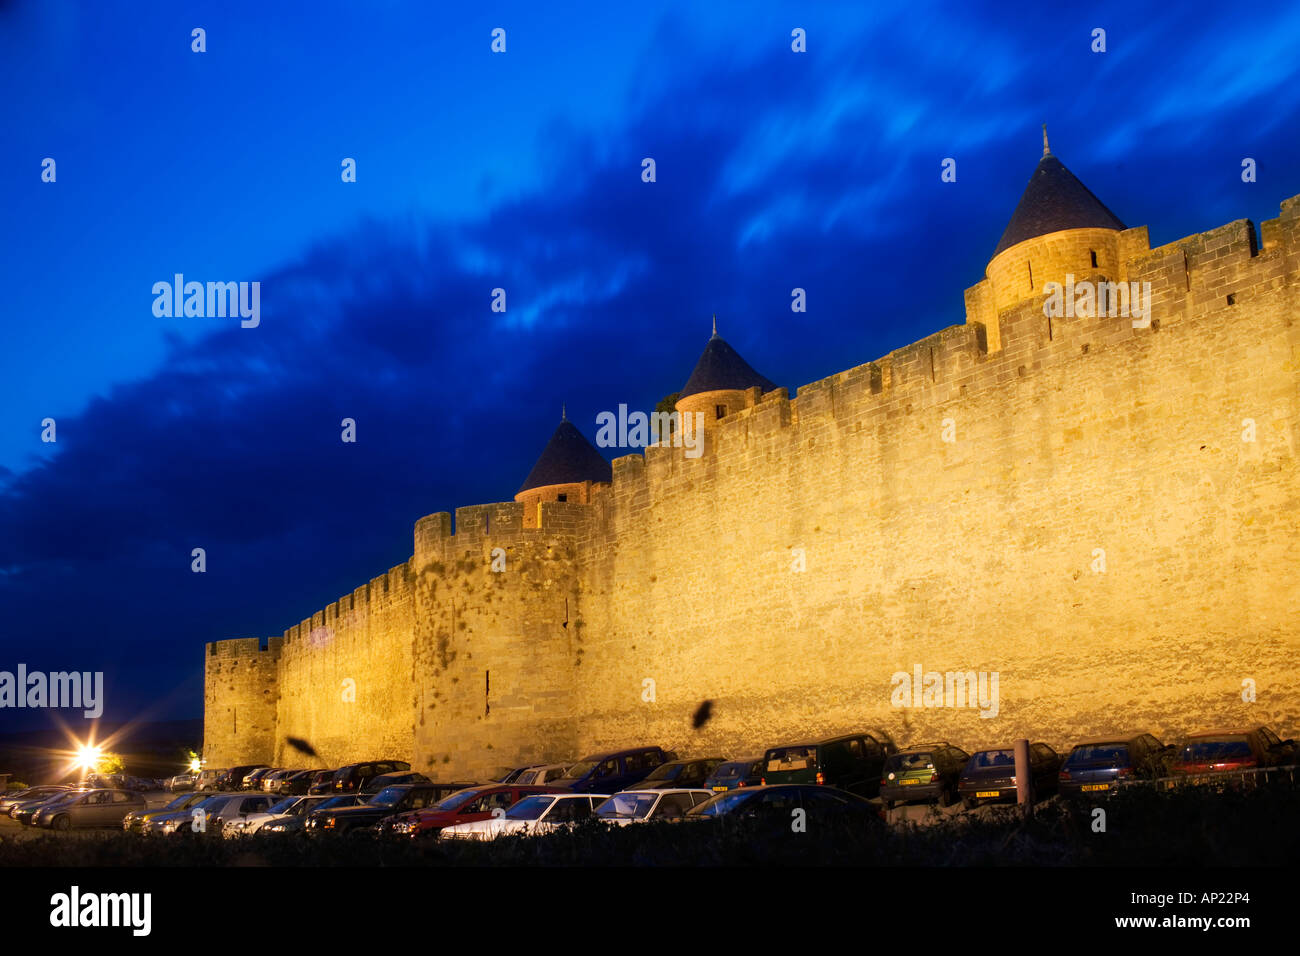 Carcassonne medieval walls by night - Stock Image